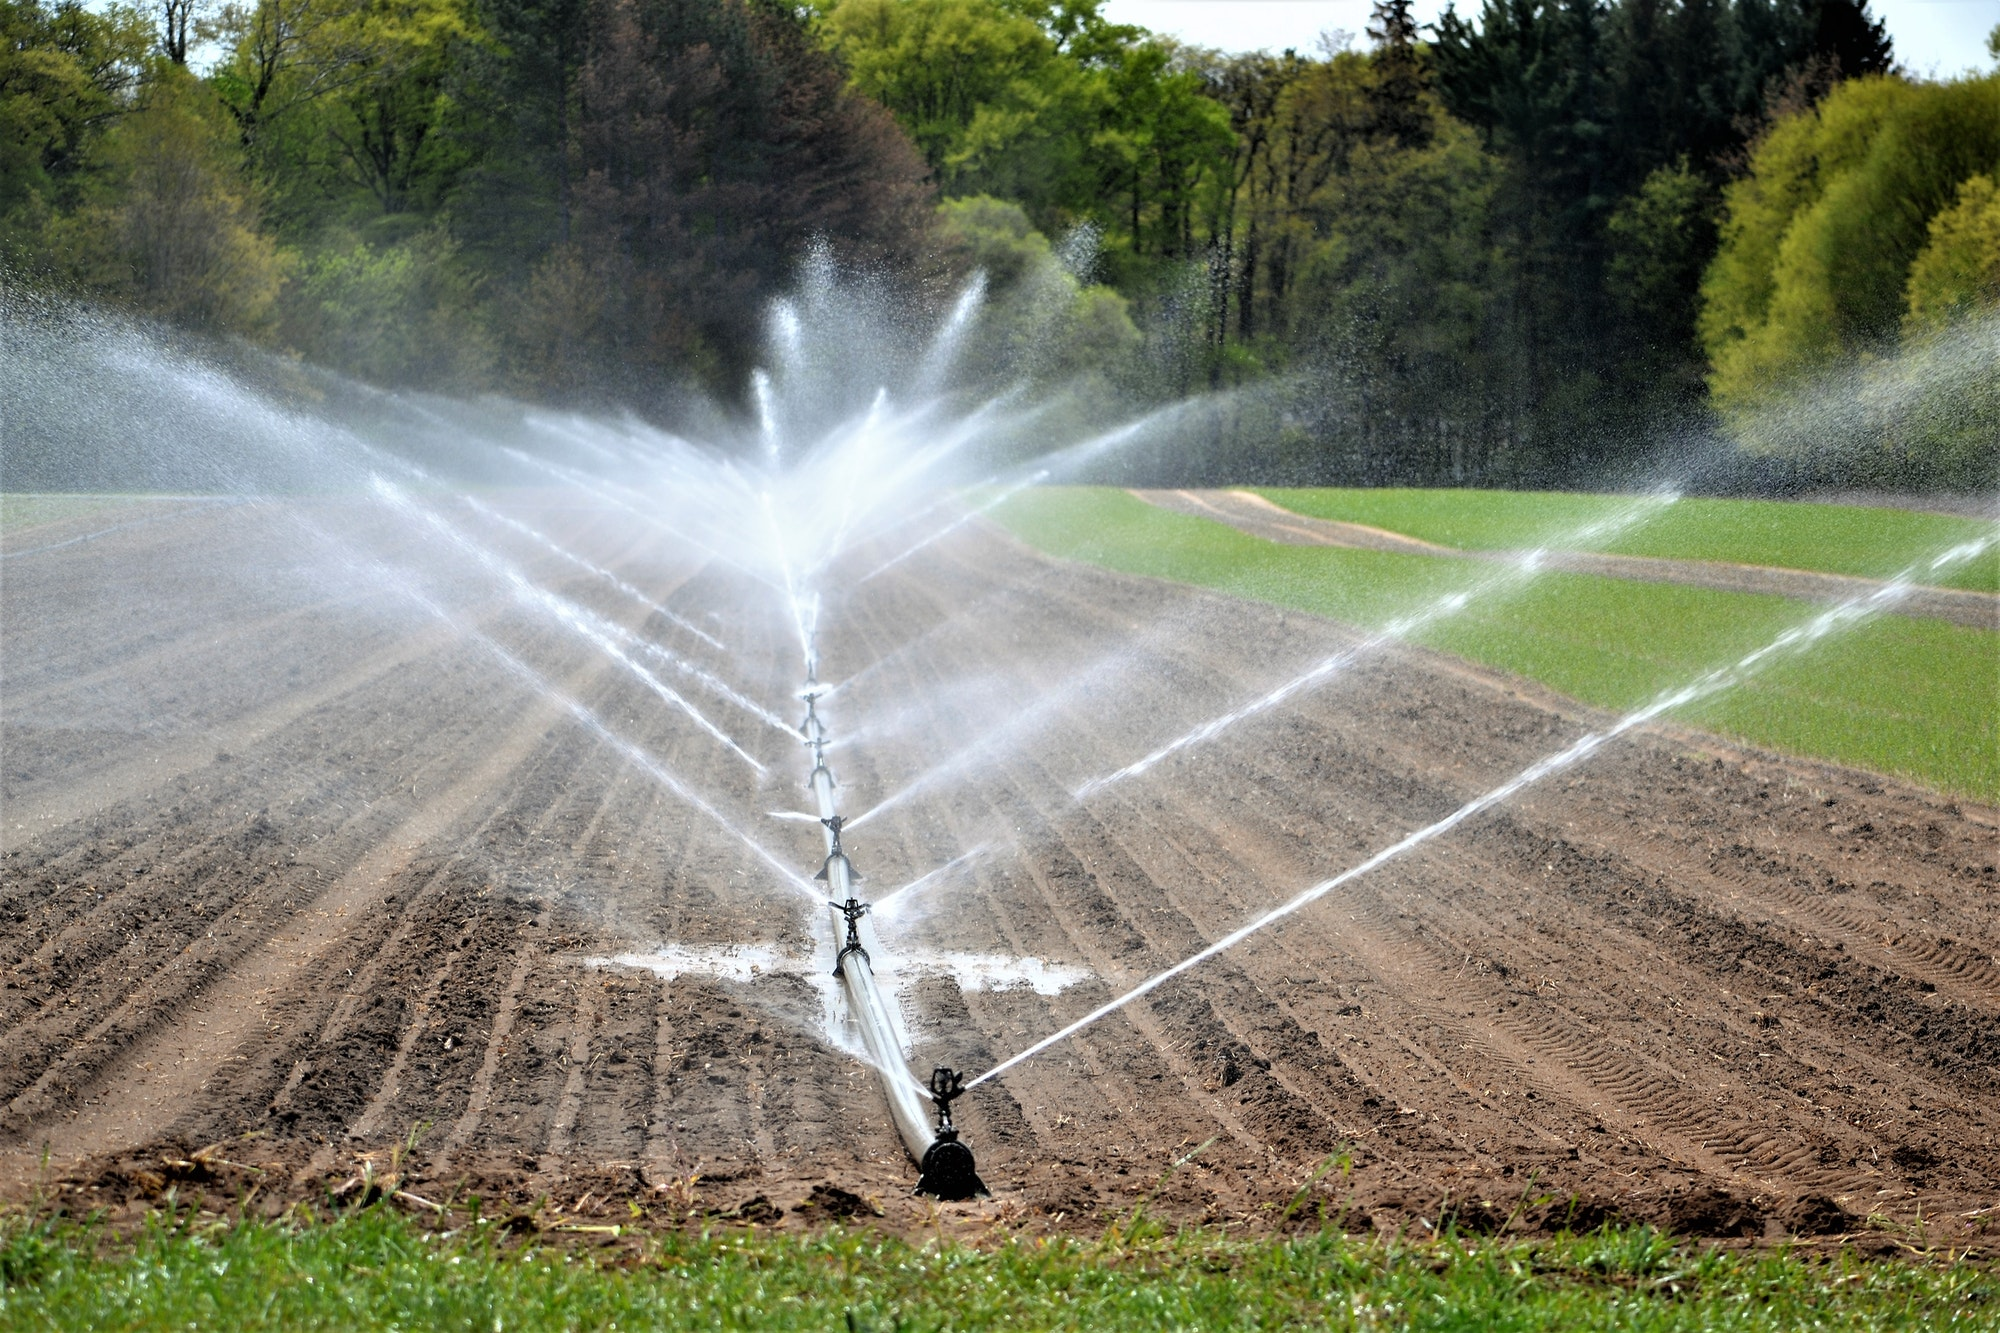 irrigation system watering crops farm land agriculture